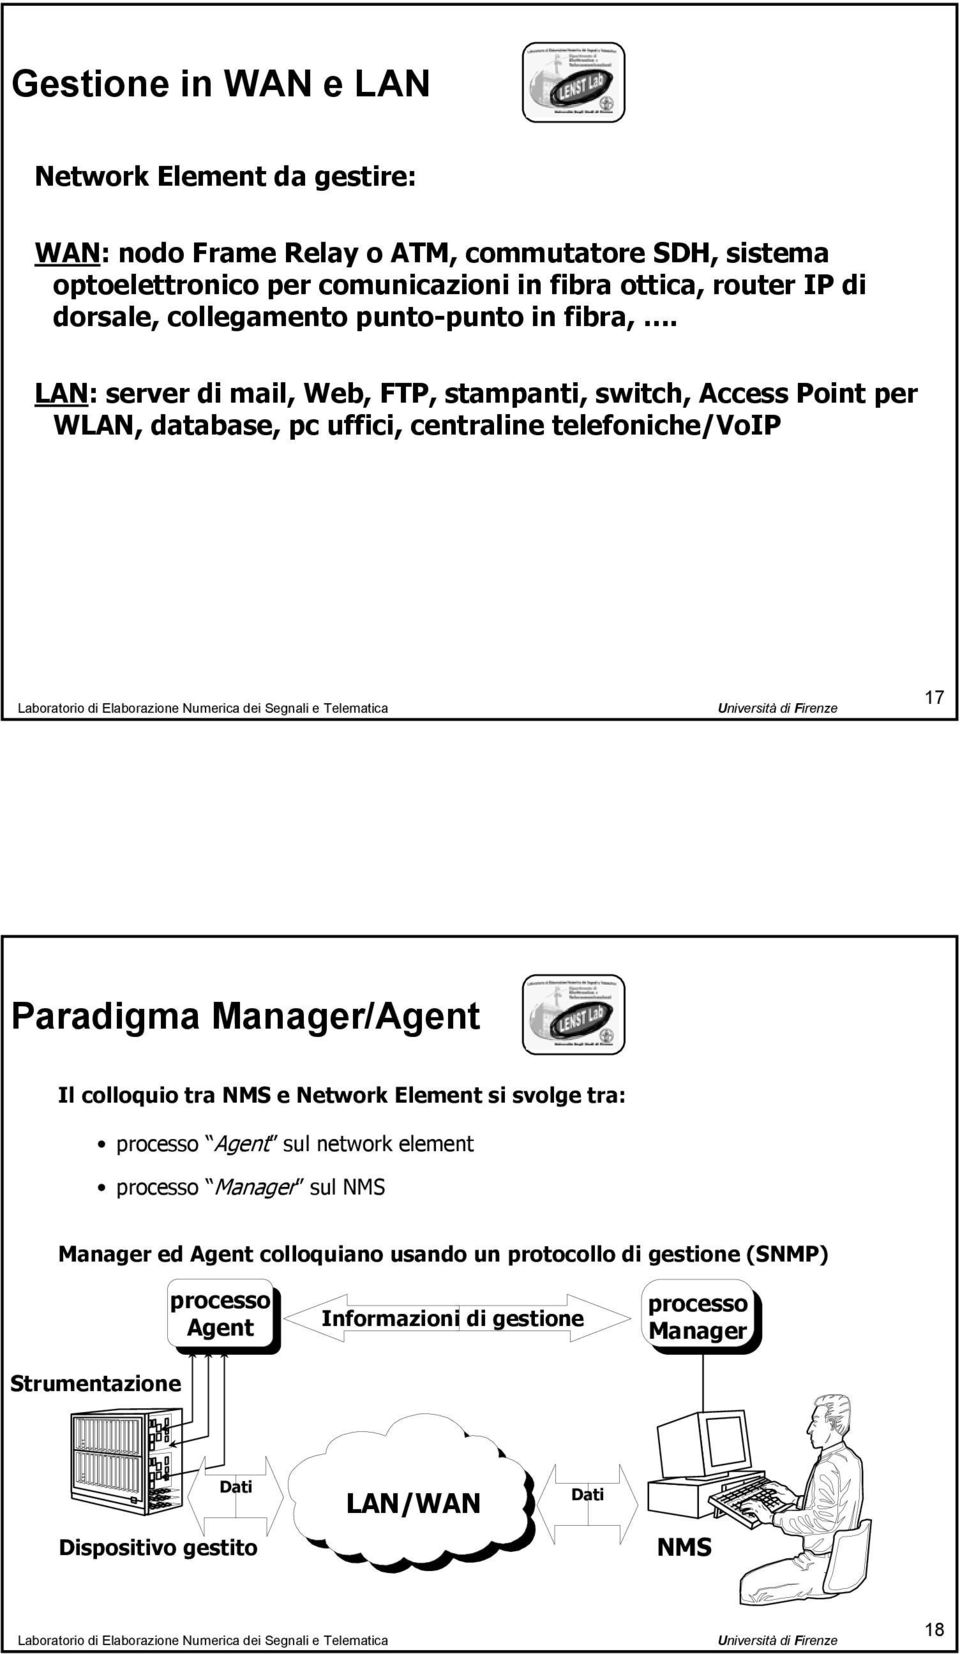 LAN: server di mail, Web, FTP, stampanti, switch, Access Point per WLAN, database, pc uffici, centraline telefoniche/voip 17 Paradigma Manager/Agent Il colloquio tra